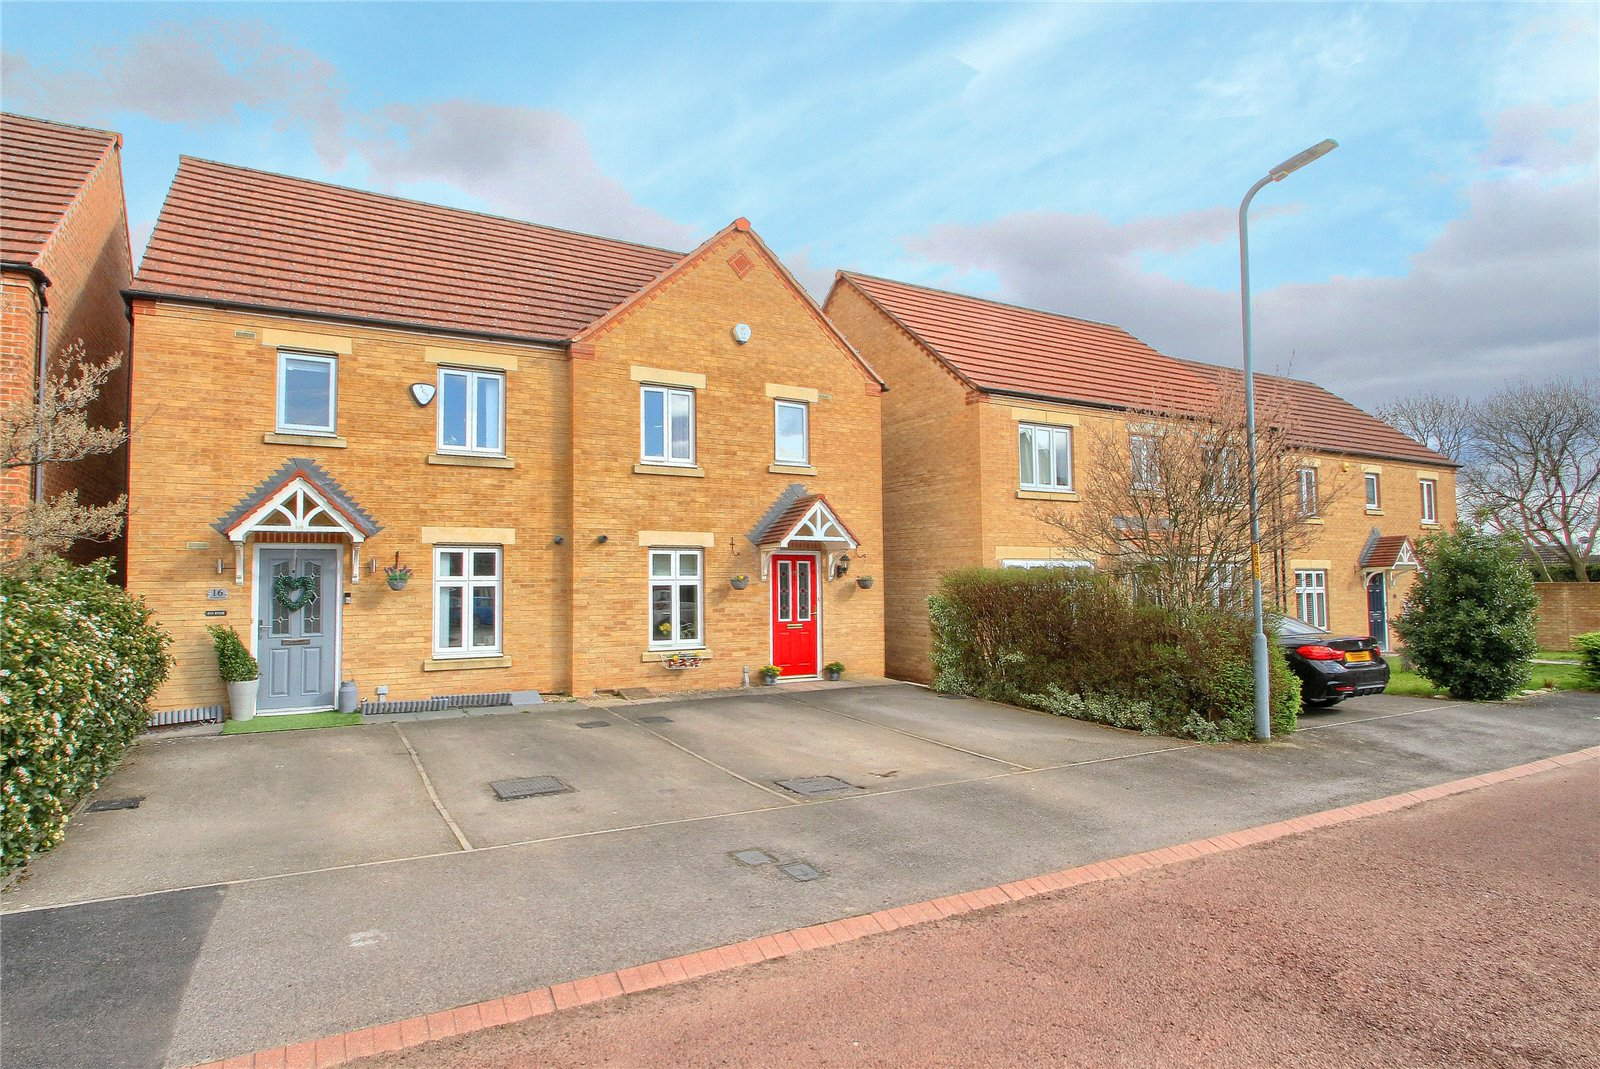 3 bed house for sale in Red Admiral Close, Stockton-on-Tees 1